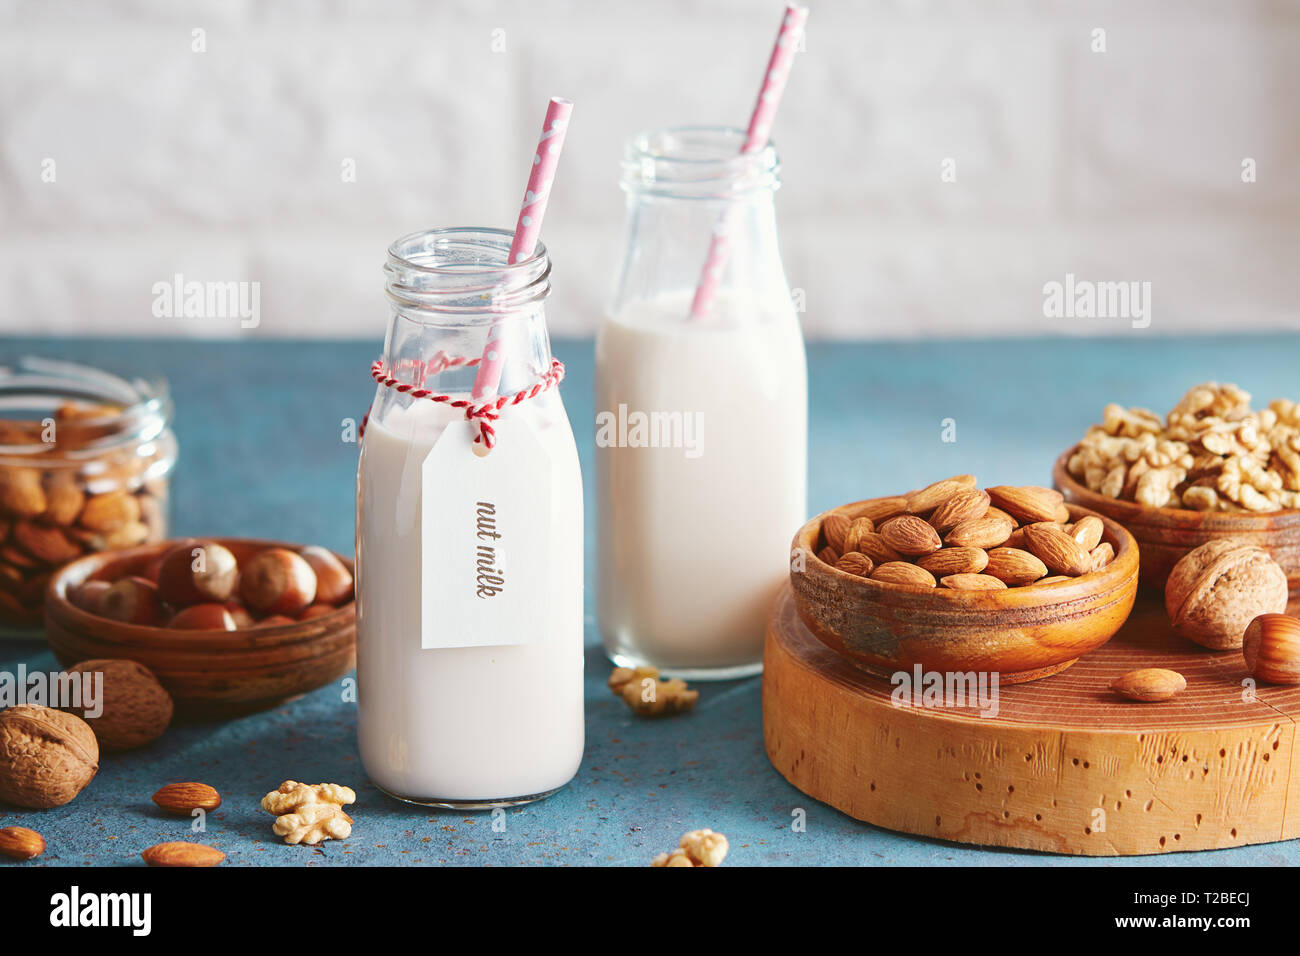 Vegan substitute dairy milk. Glass bottles with non-dairy milk and ingredients. - Stock Image